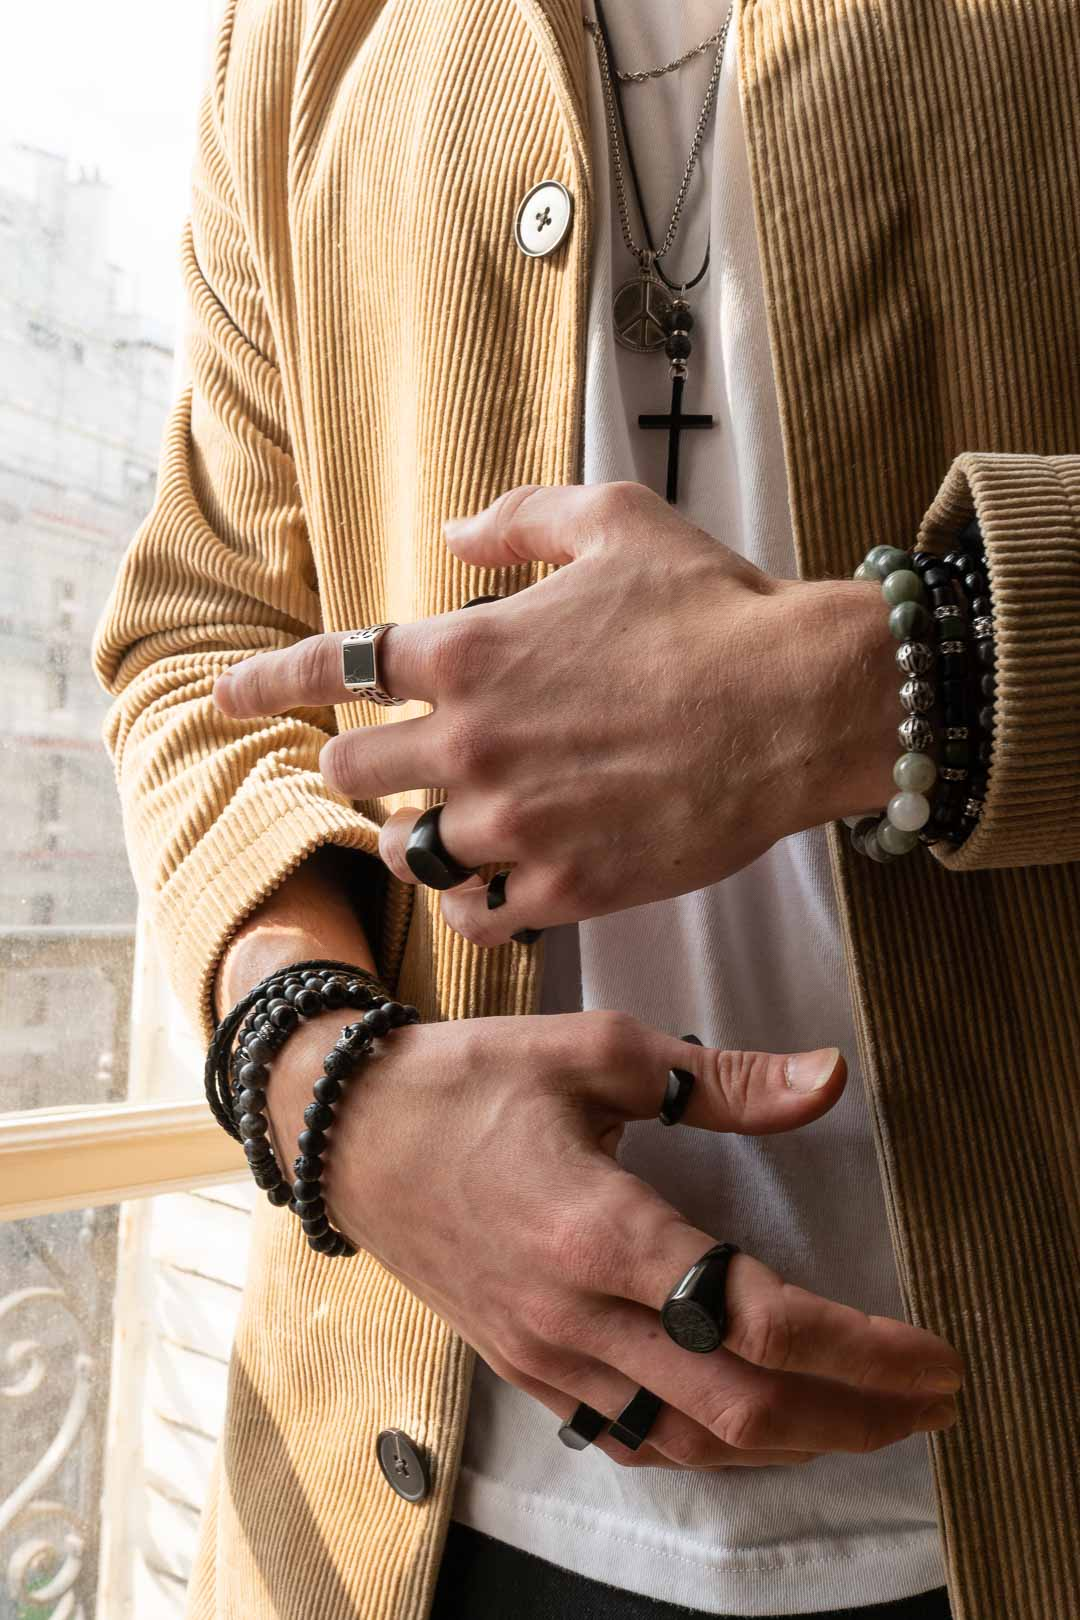 Man wearing rings and bracelets